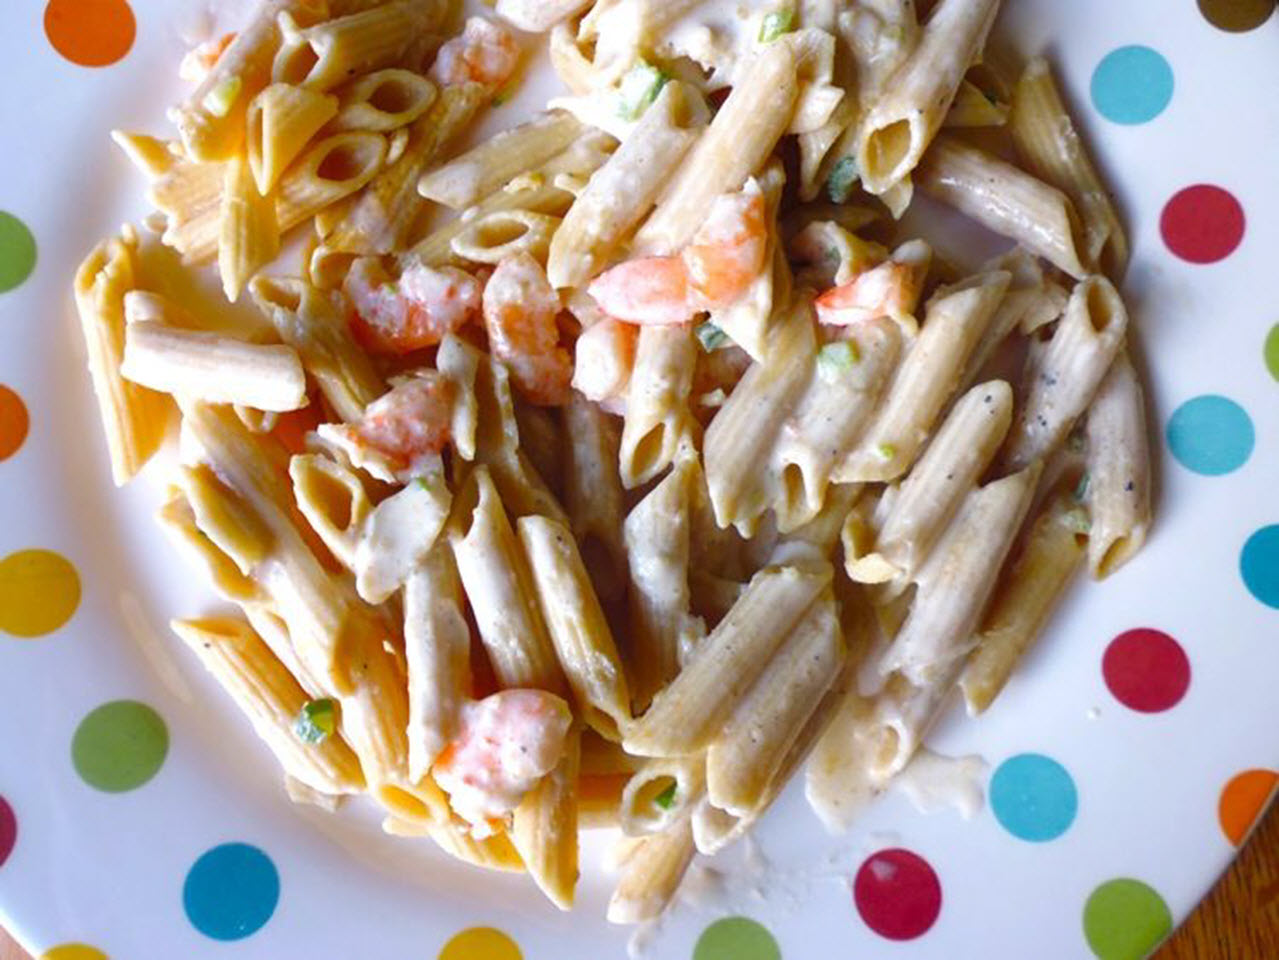 """""""If you don't have much time for dinner, try this creamy shrimp pasta recipe,"""" says nch, the recipe submitter. You'll cook garlic and shrimp, add wine and cream, and simmer until the sauce starts to thicken, then stir in basil. Spoon your creamy shrimp over cooked spaghetti and top with grated Parmesan cheese. """"It's quick and easy to make and my whole family loved it."""""""